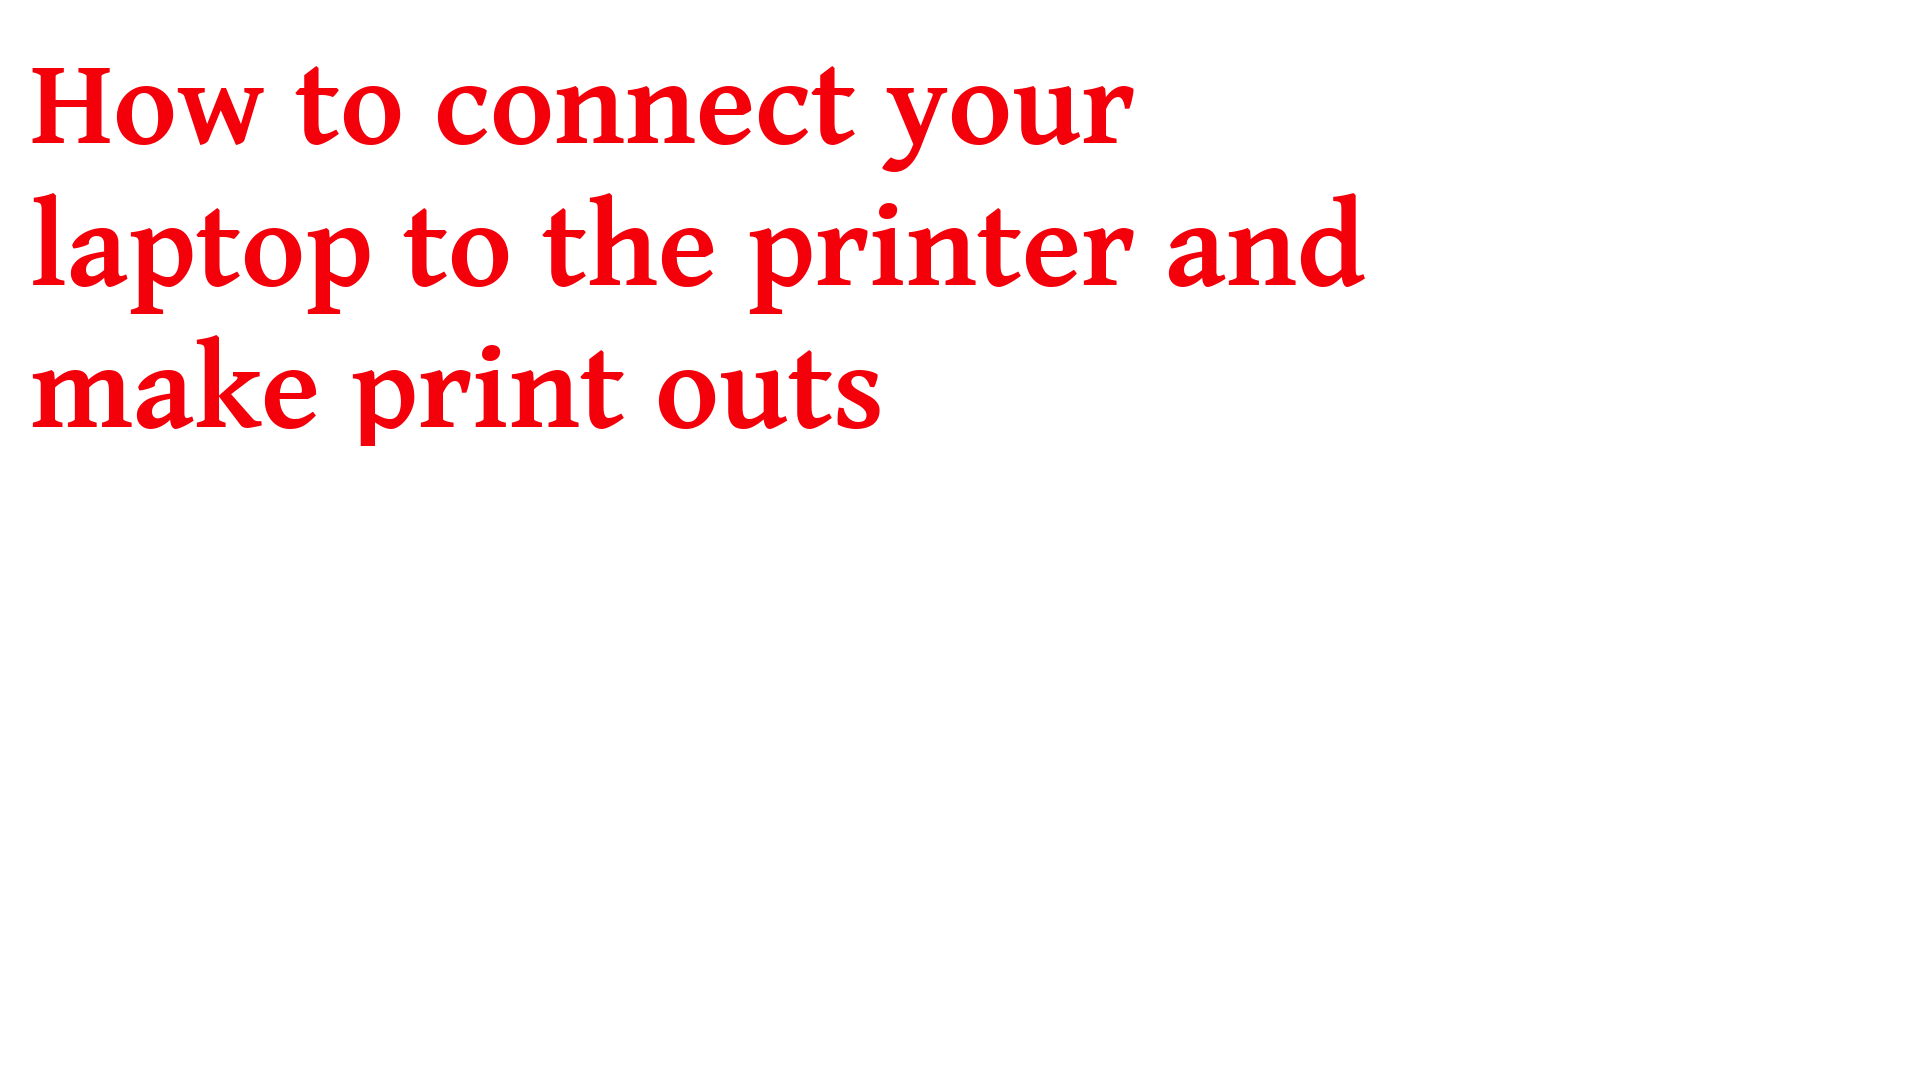 How to connect your laptop to the printer olivetti